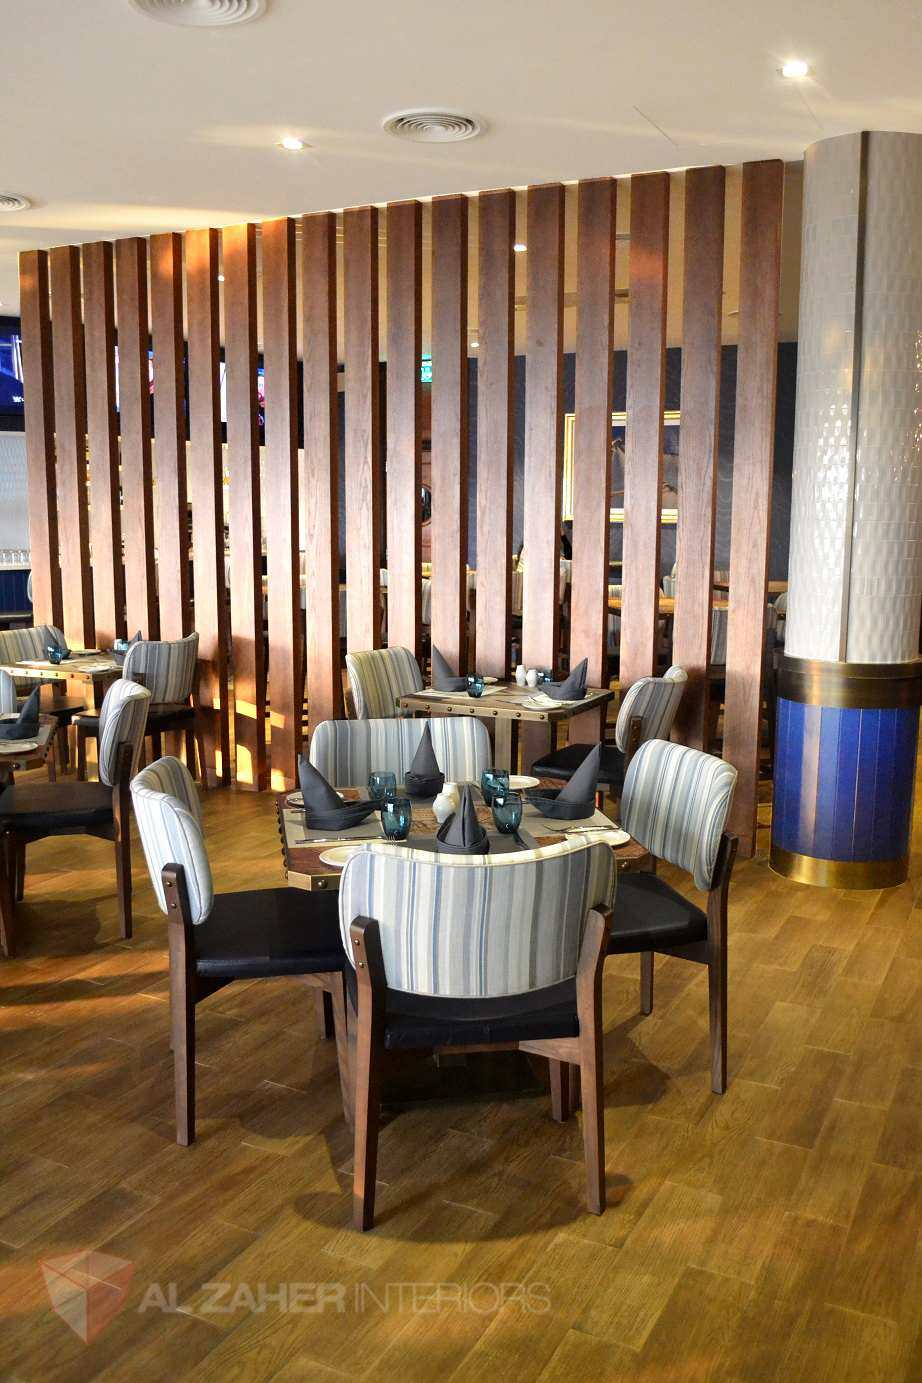 Restaurant Interior Design In Dubai